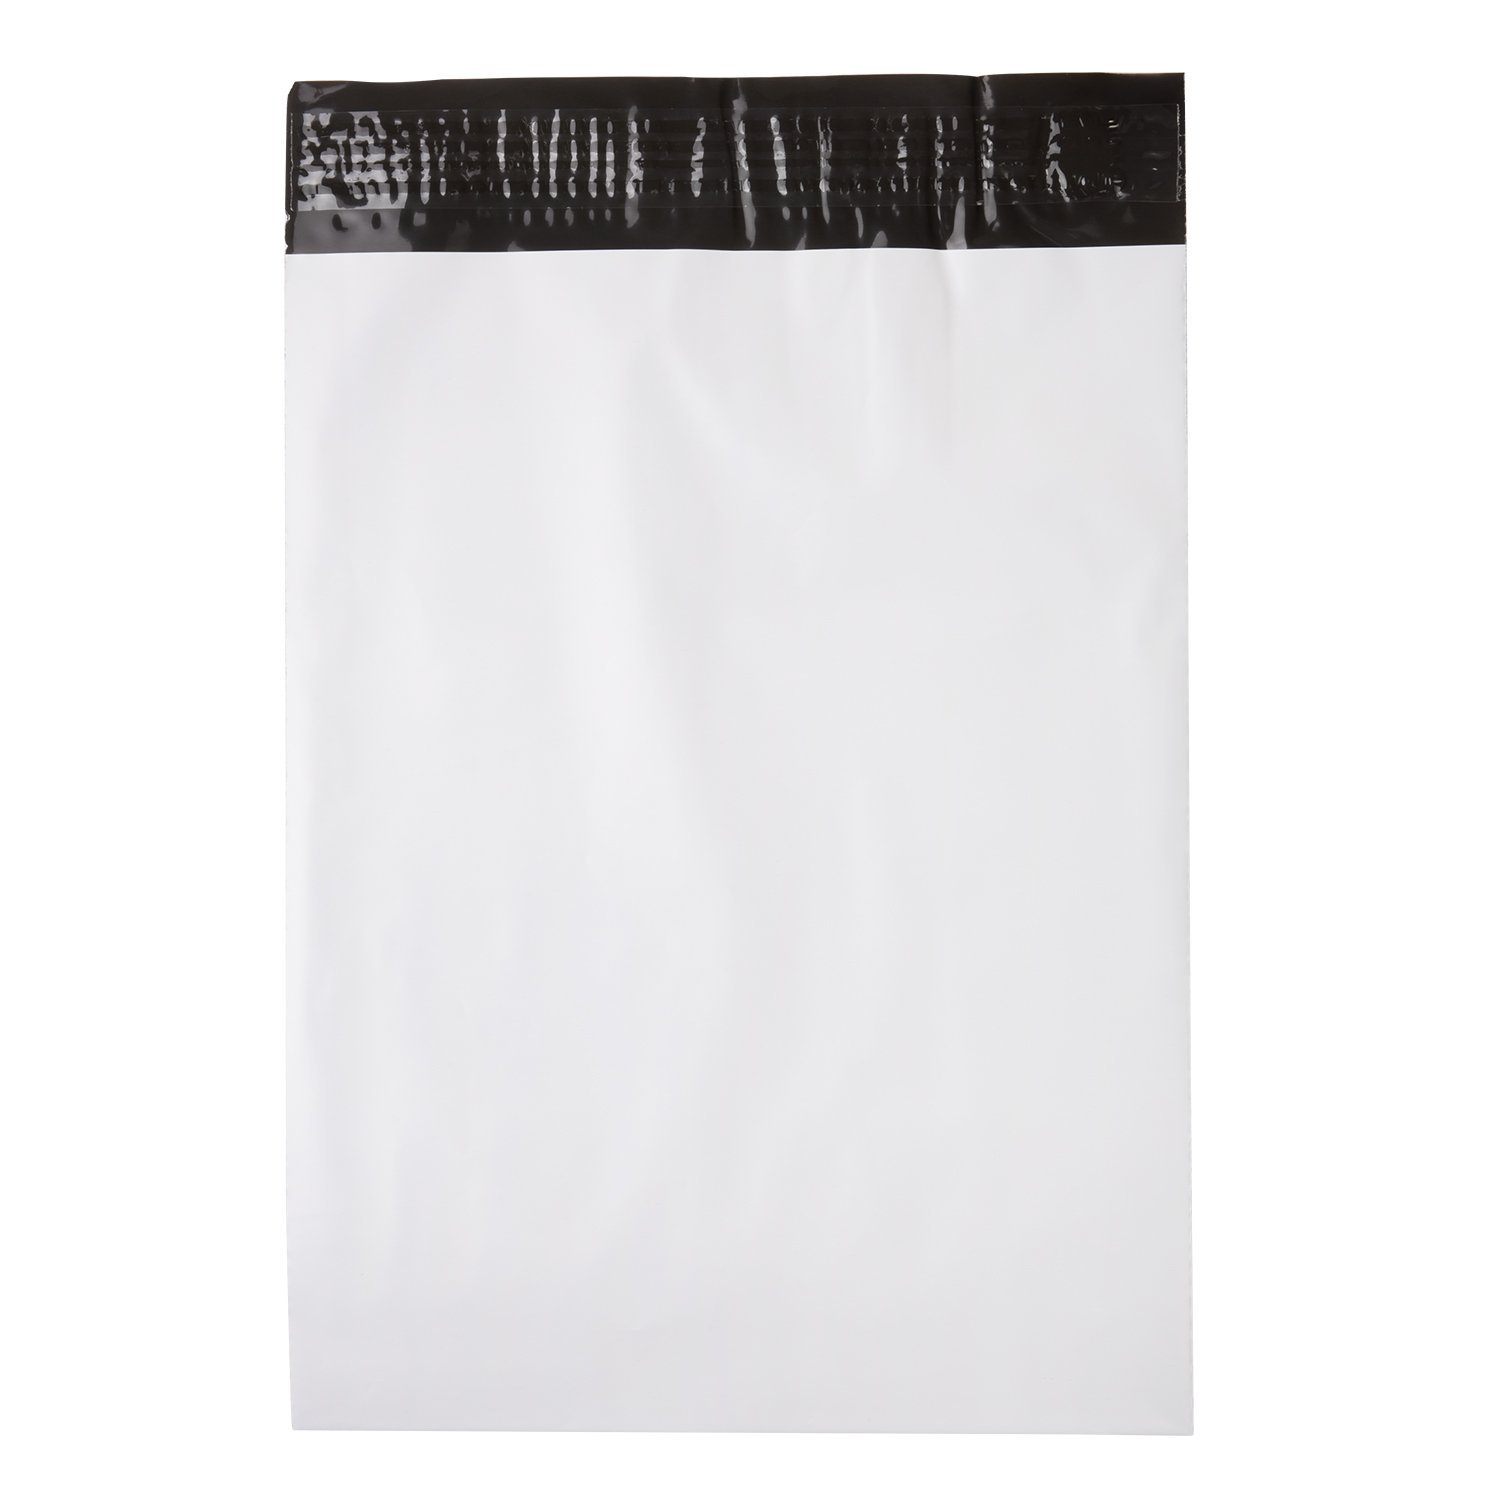 Owlpack Poly Mailer Security Bags, Self Seal, 2.5 Mil Plastic Envelopes for Shipping & Packaging(10 x 13 Inches, Pack of 100)